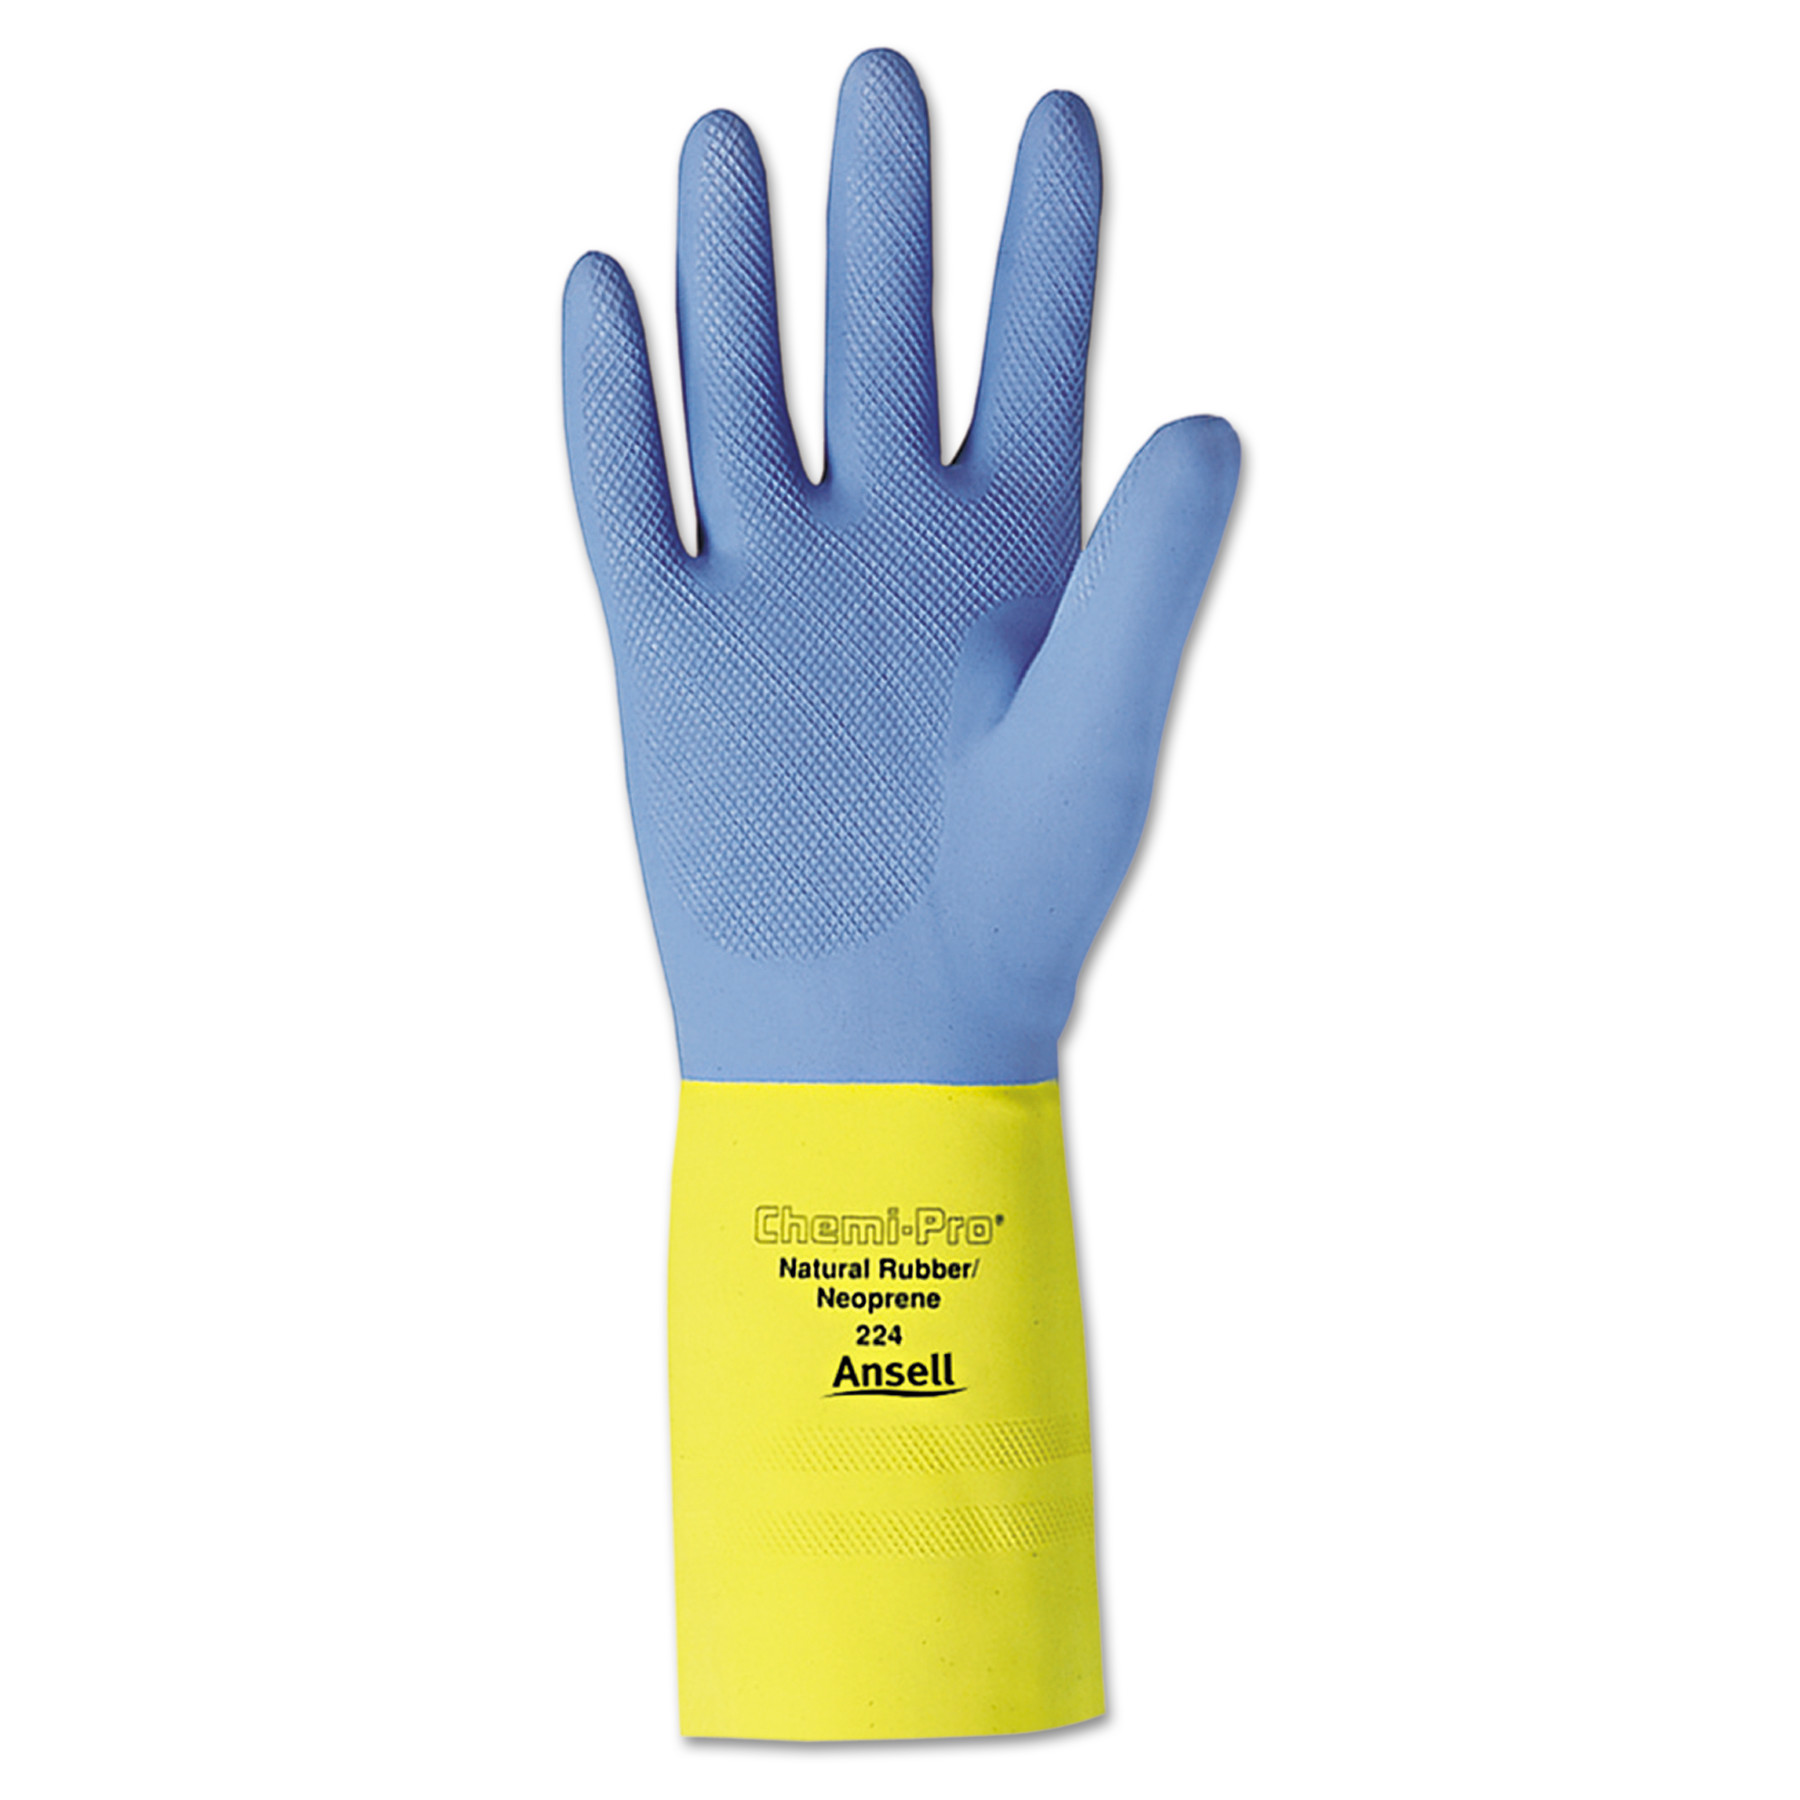 AnsellPro Chemi-Pro Neoprene Gloves, Blue Yellow, Size 10, 12 Pairs by ANSELL LIMITED